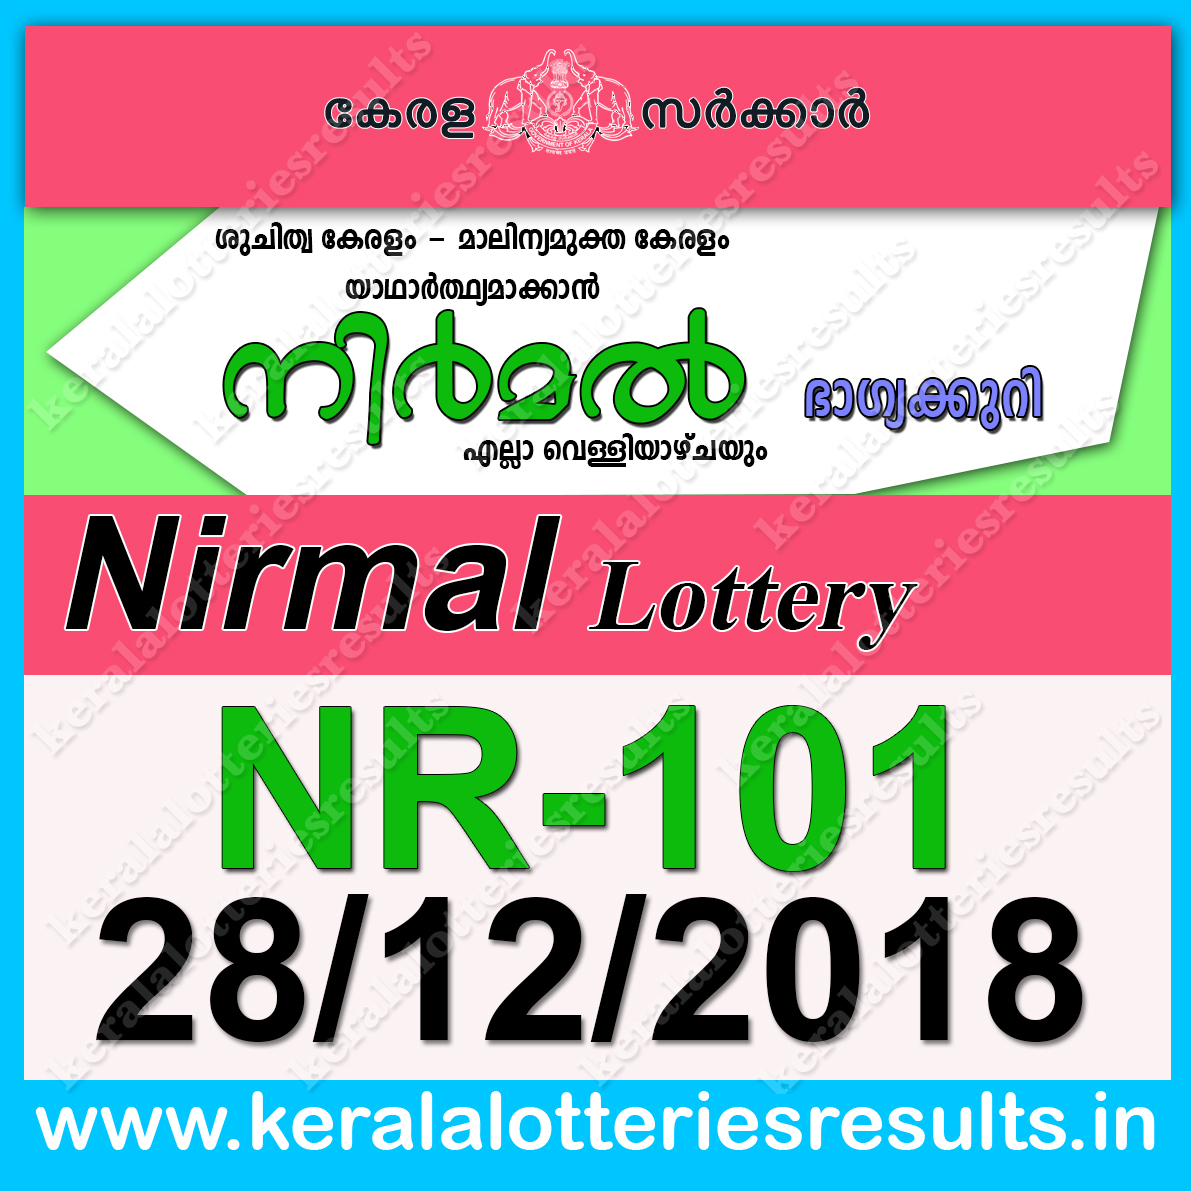 kerala lottery results today